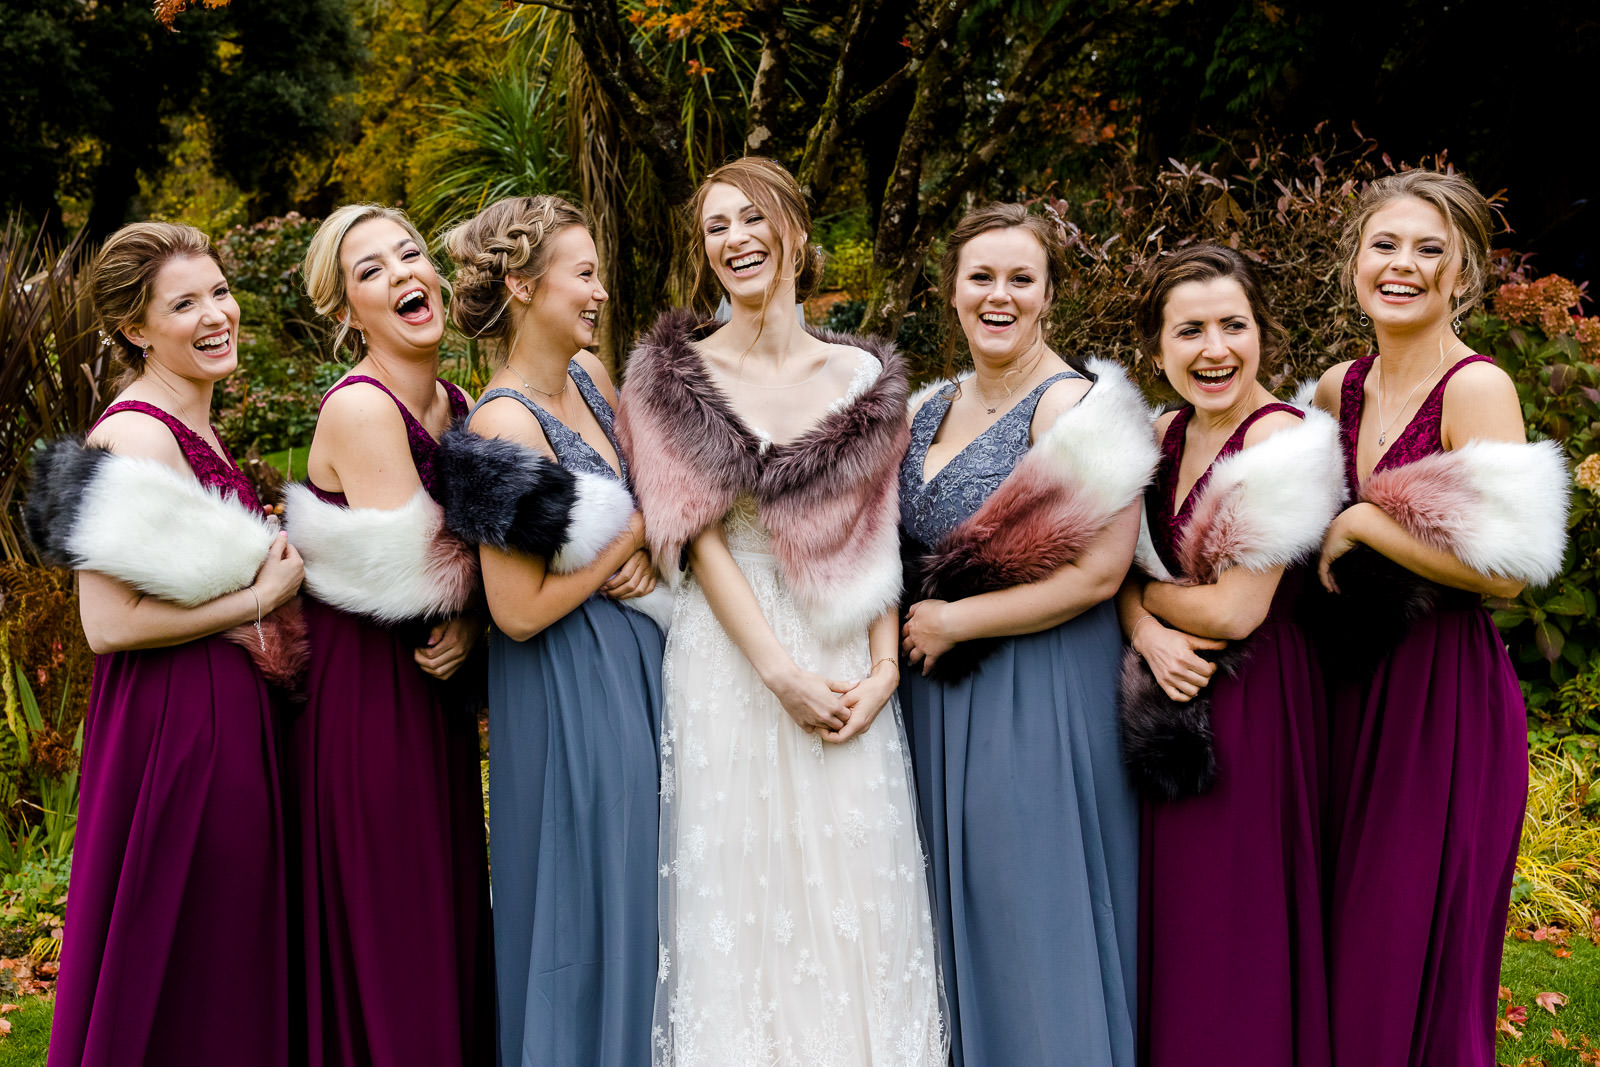 Miskin Manor Wedding Photography - Art by Design Photography - Bridesmaids and Bride